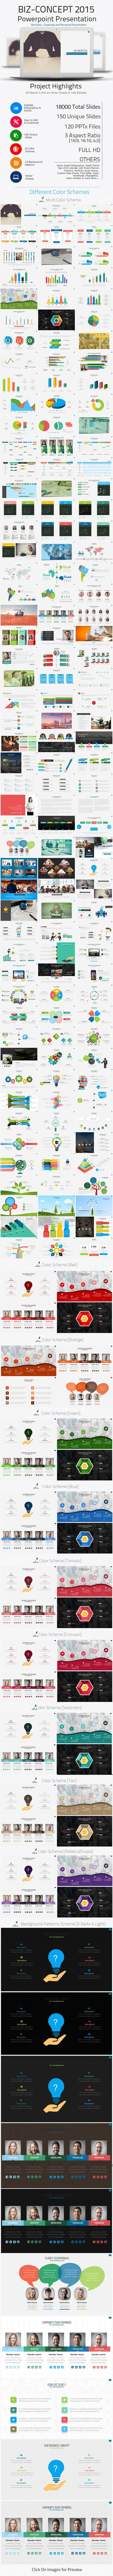 Biz Concept 2015 Power Point Presentation (PowerPoint Templates)